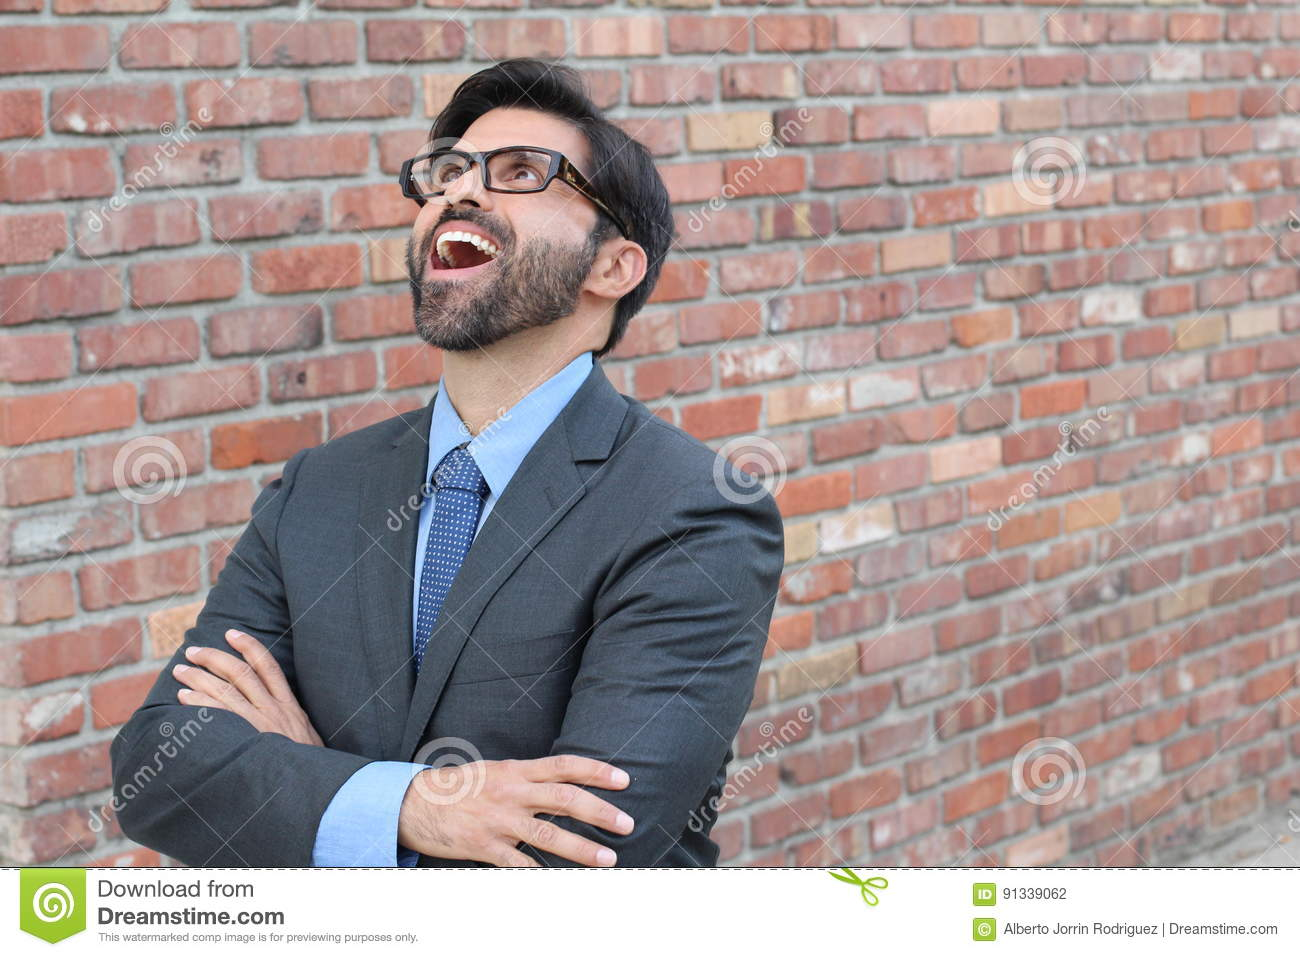 Hilarious businessman looking up with his mouth wide open